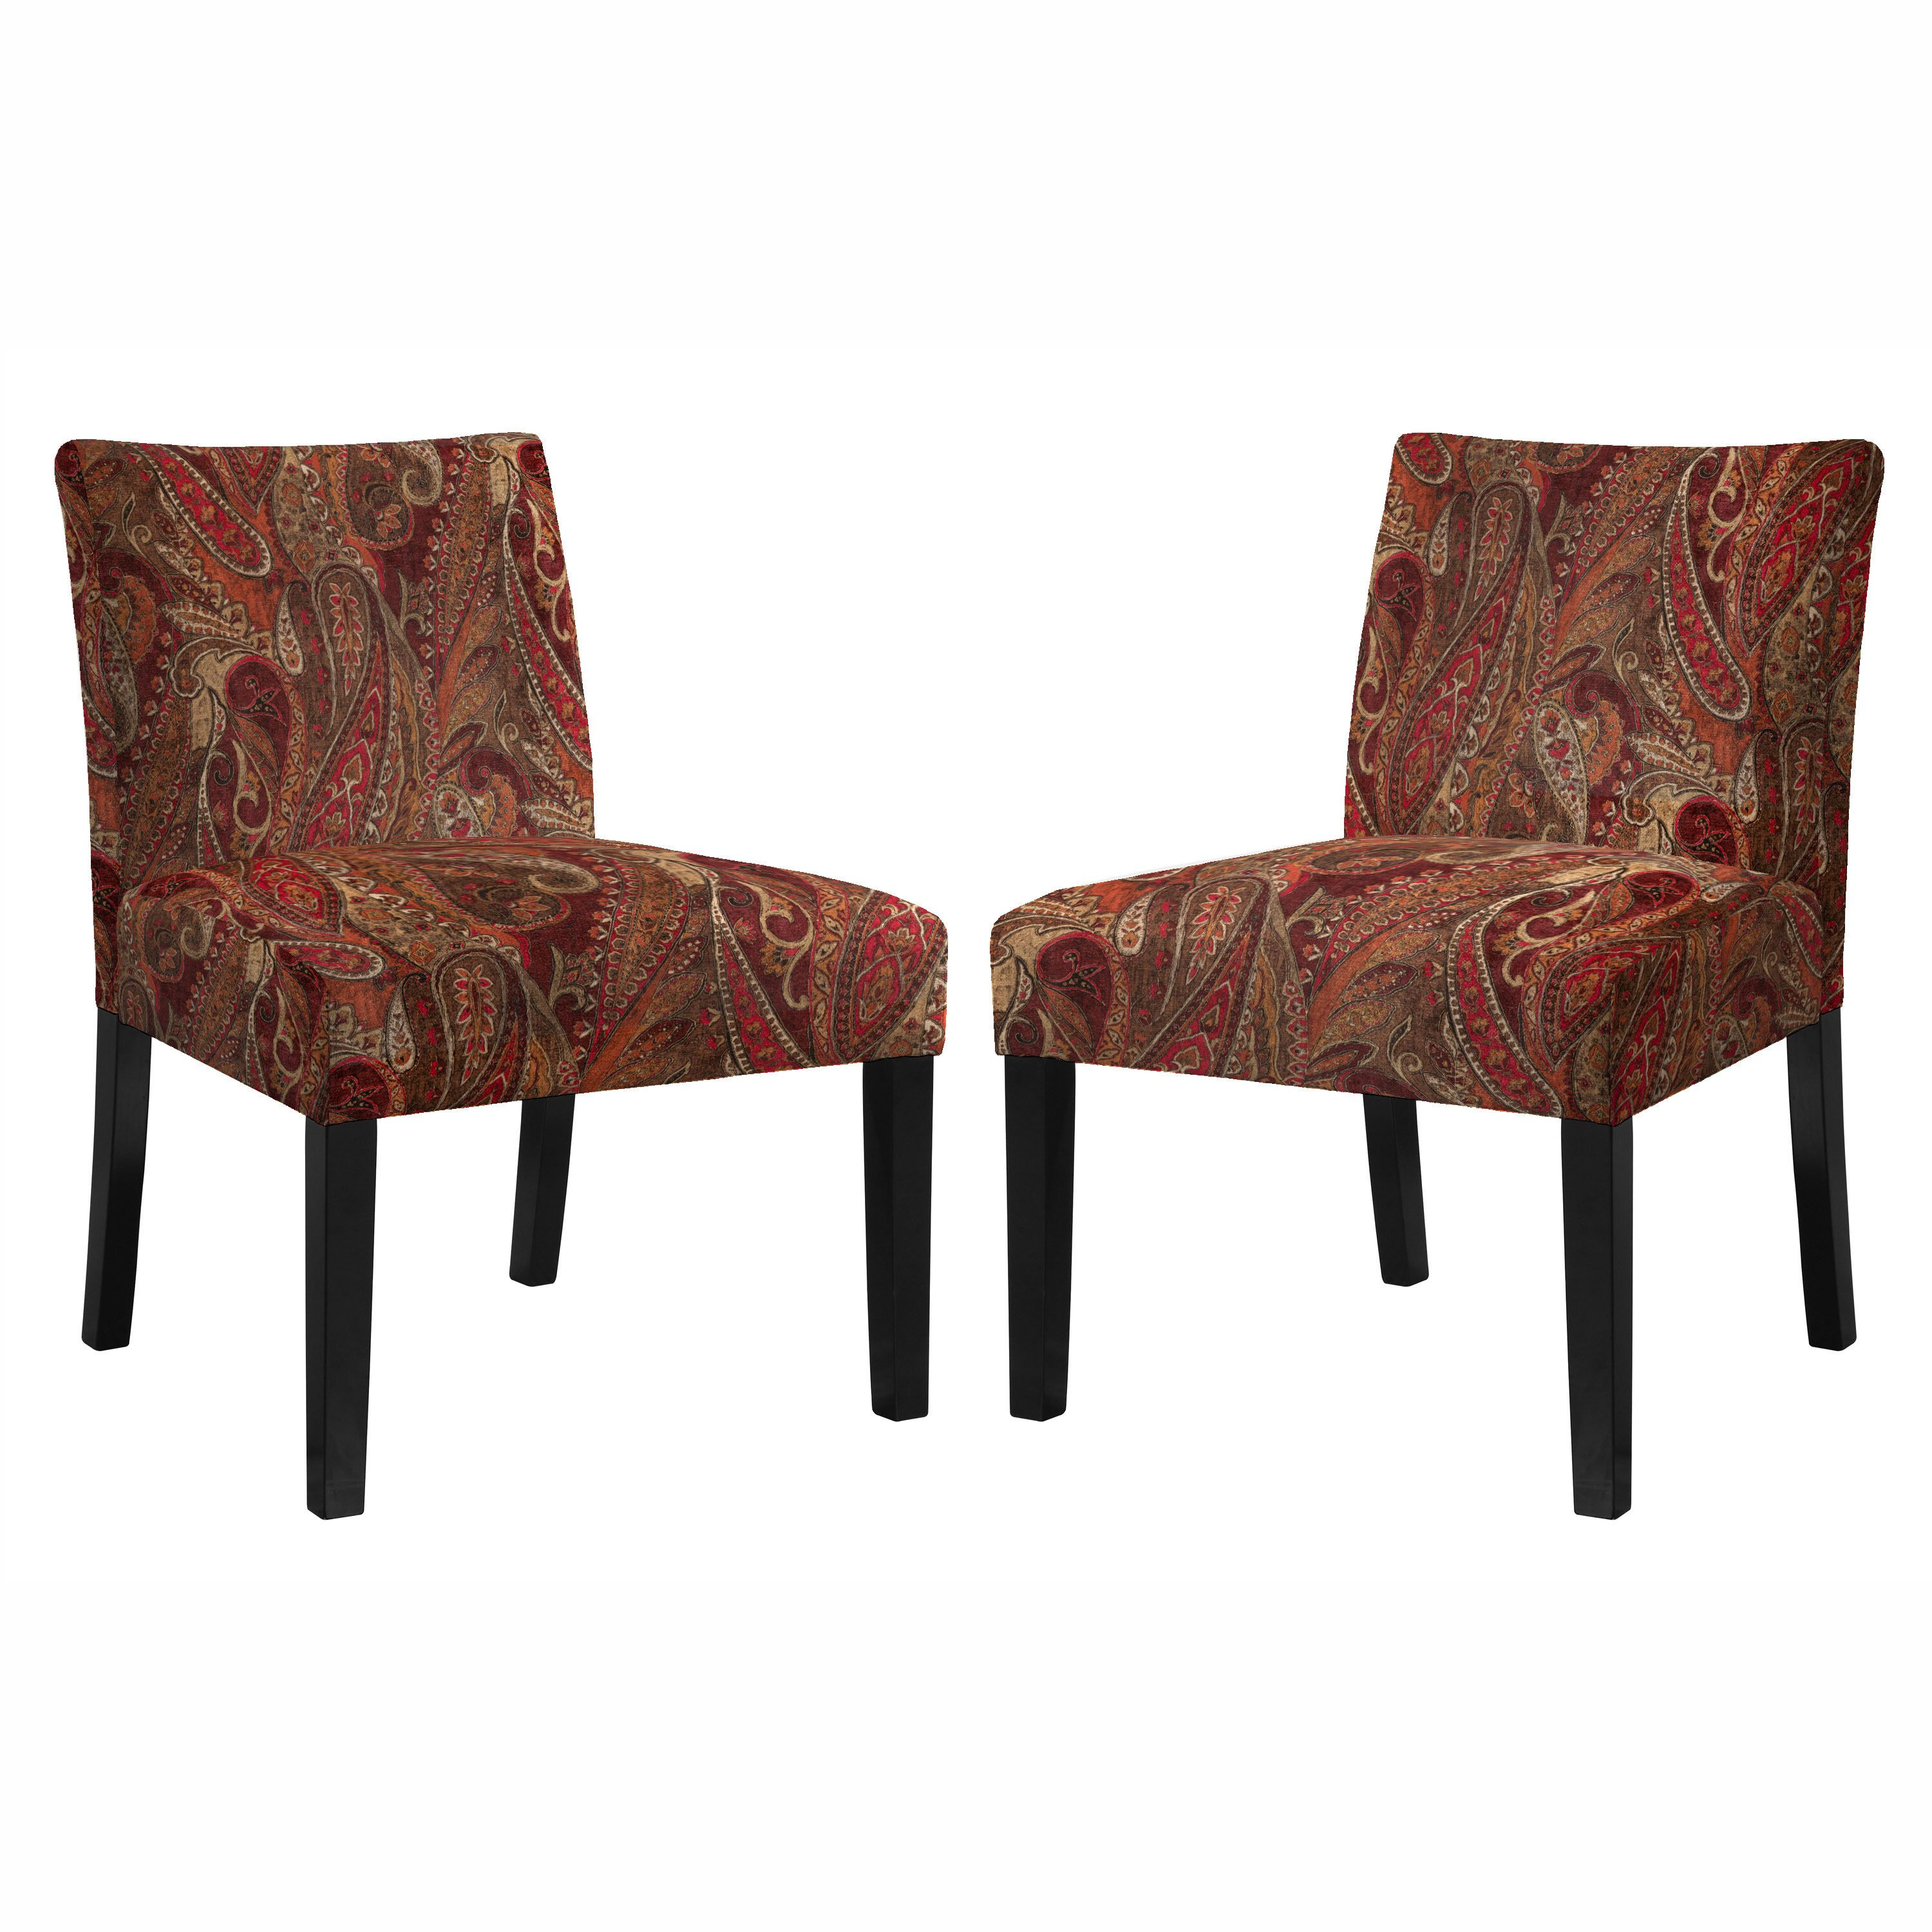 The angelo HOME Bradstreet set of 2 armless accent chairs were